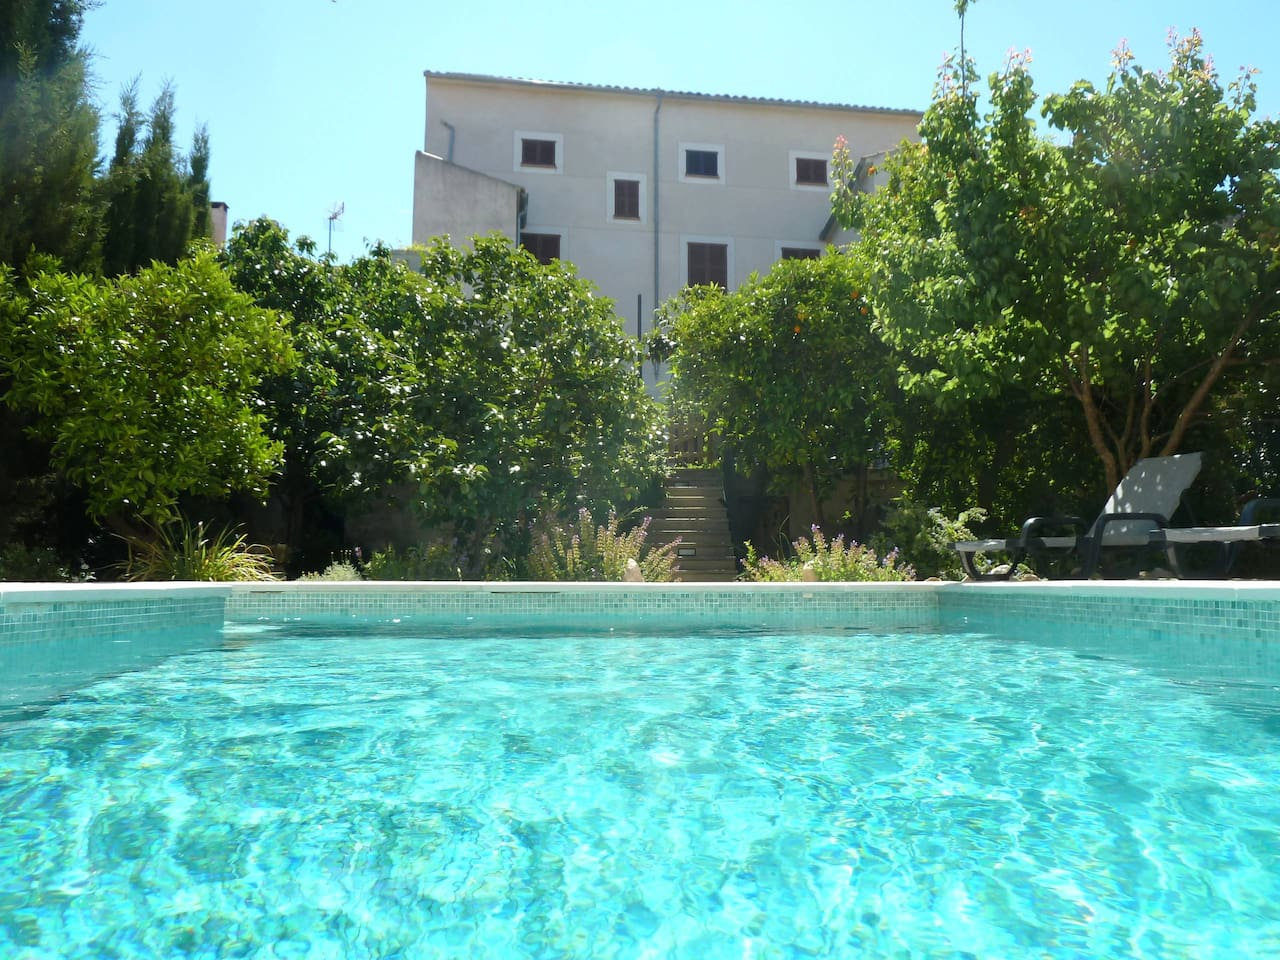 Swimming pool with 4 lounges to rest. Feel the spaciousness, and remember you are in the center of the village.